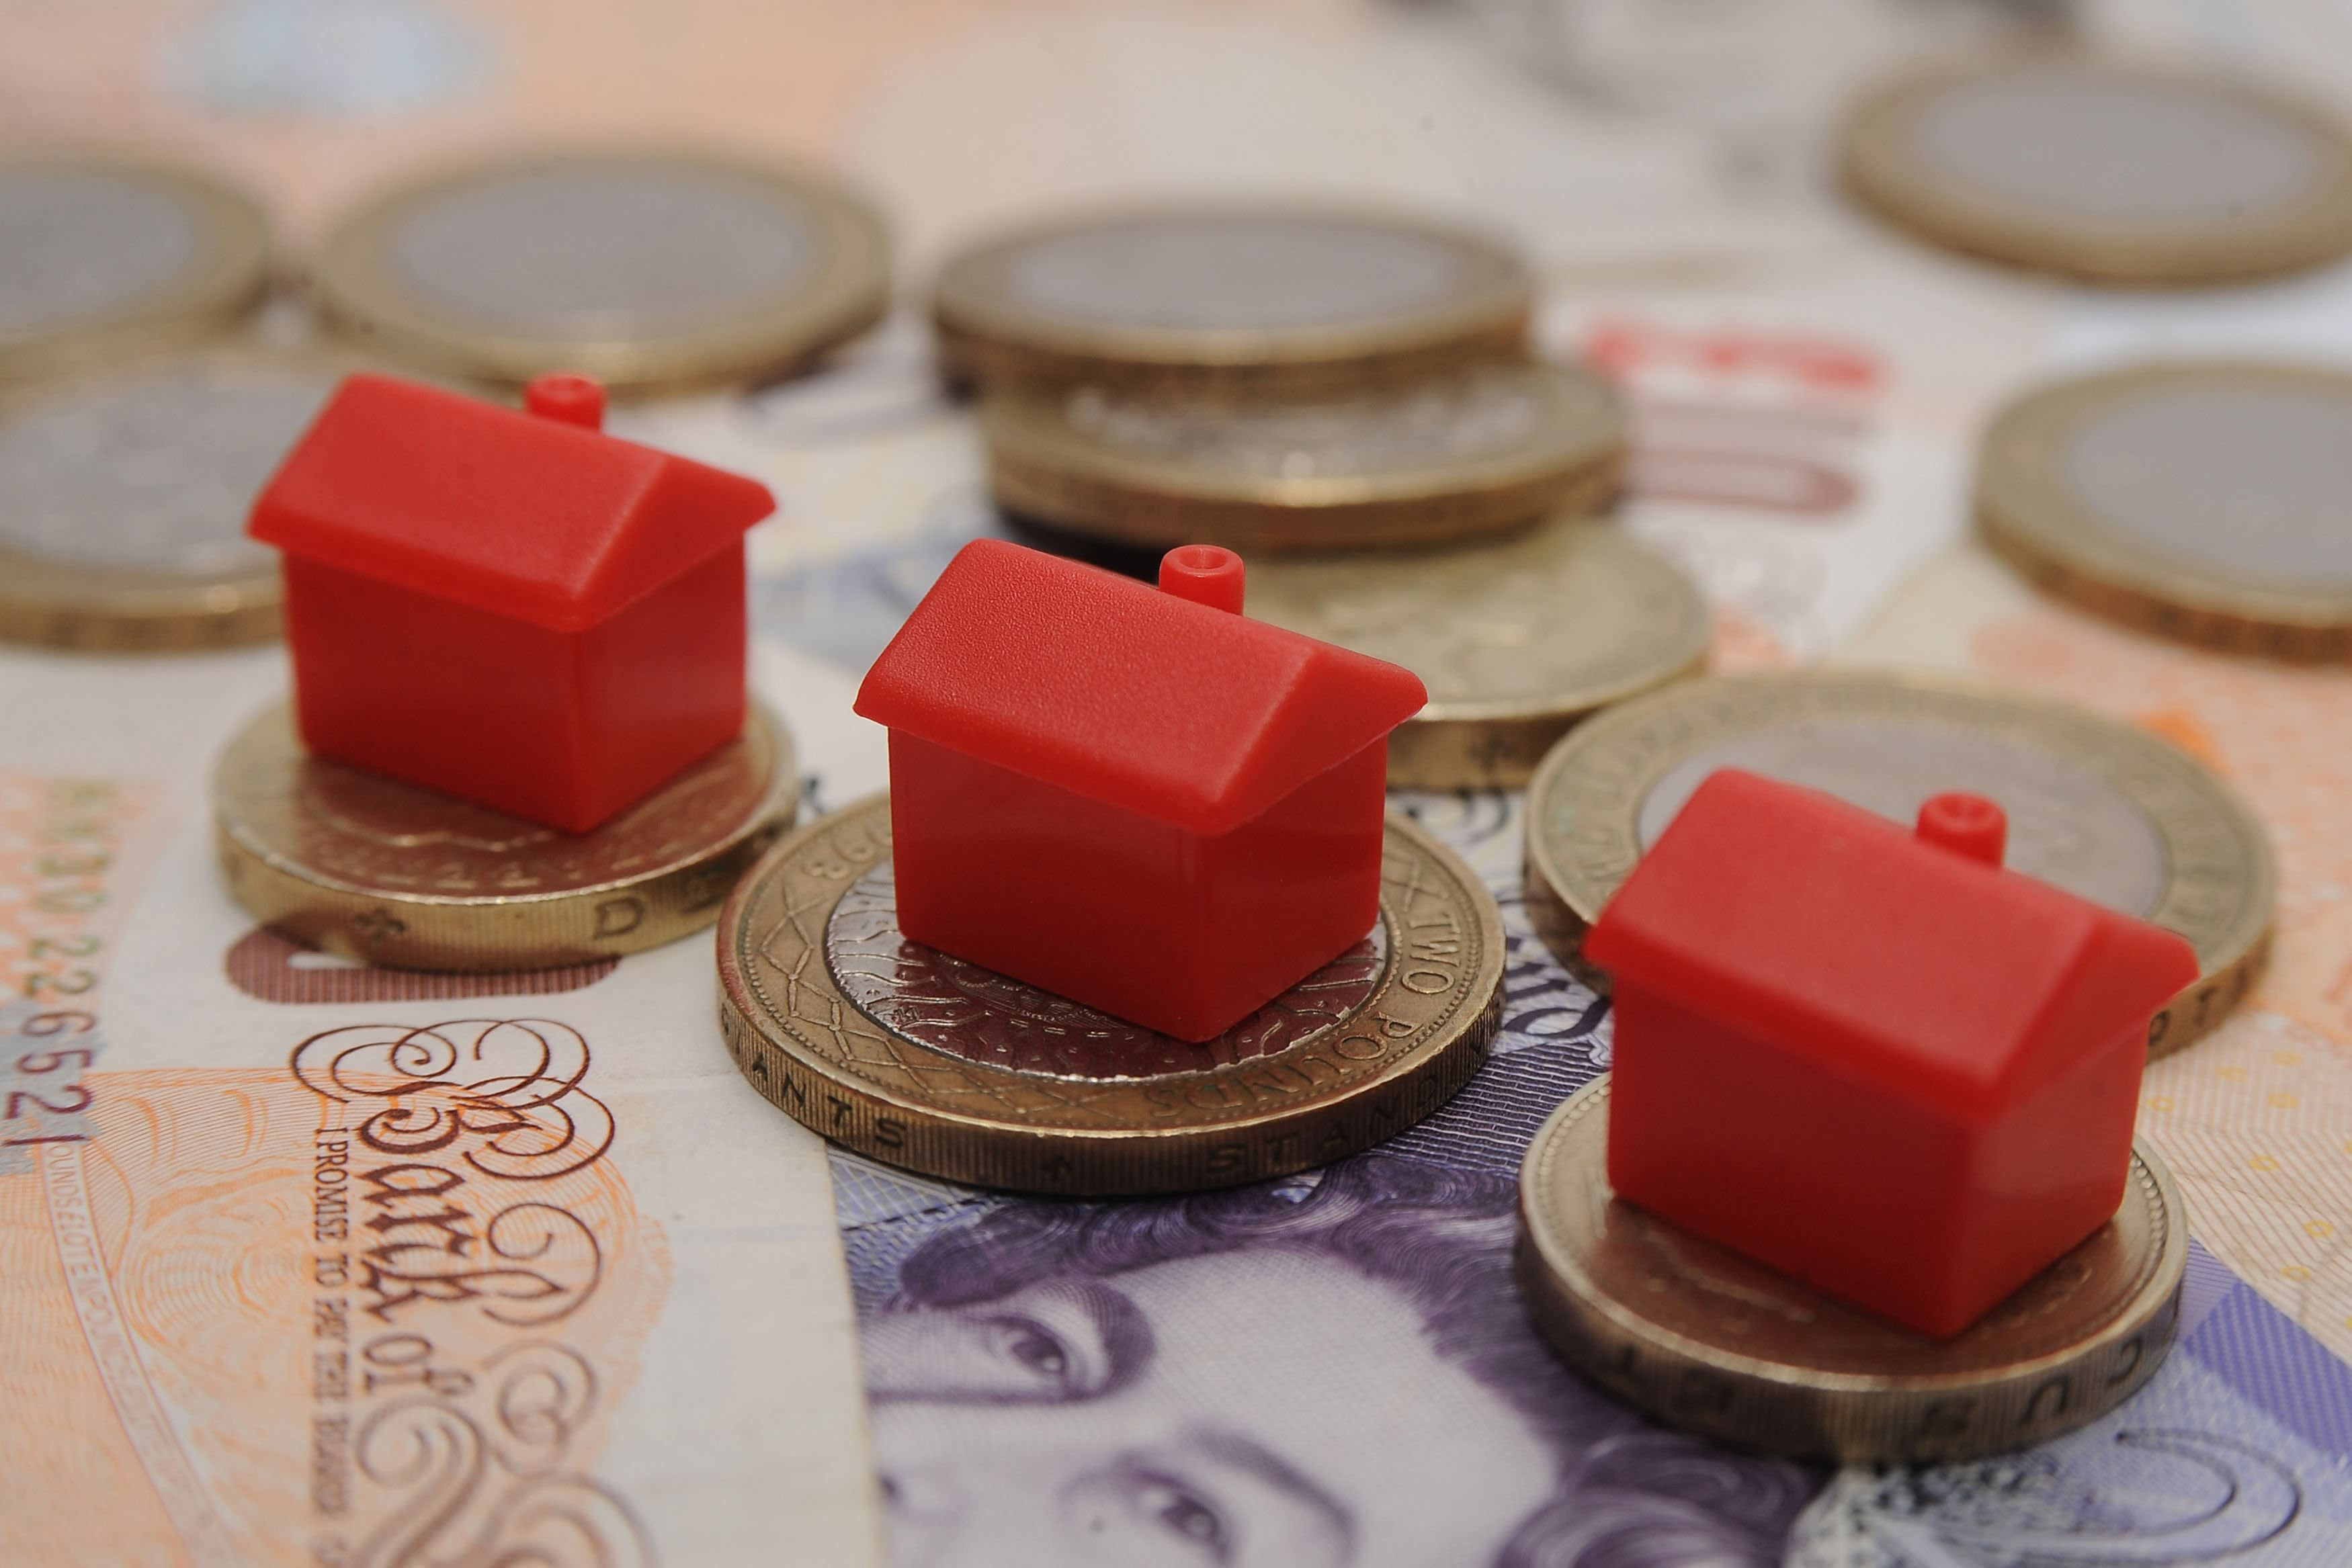 Borrowers urged to consider options as rates and fees rise